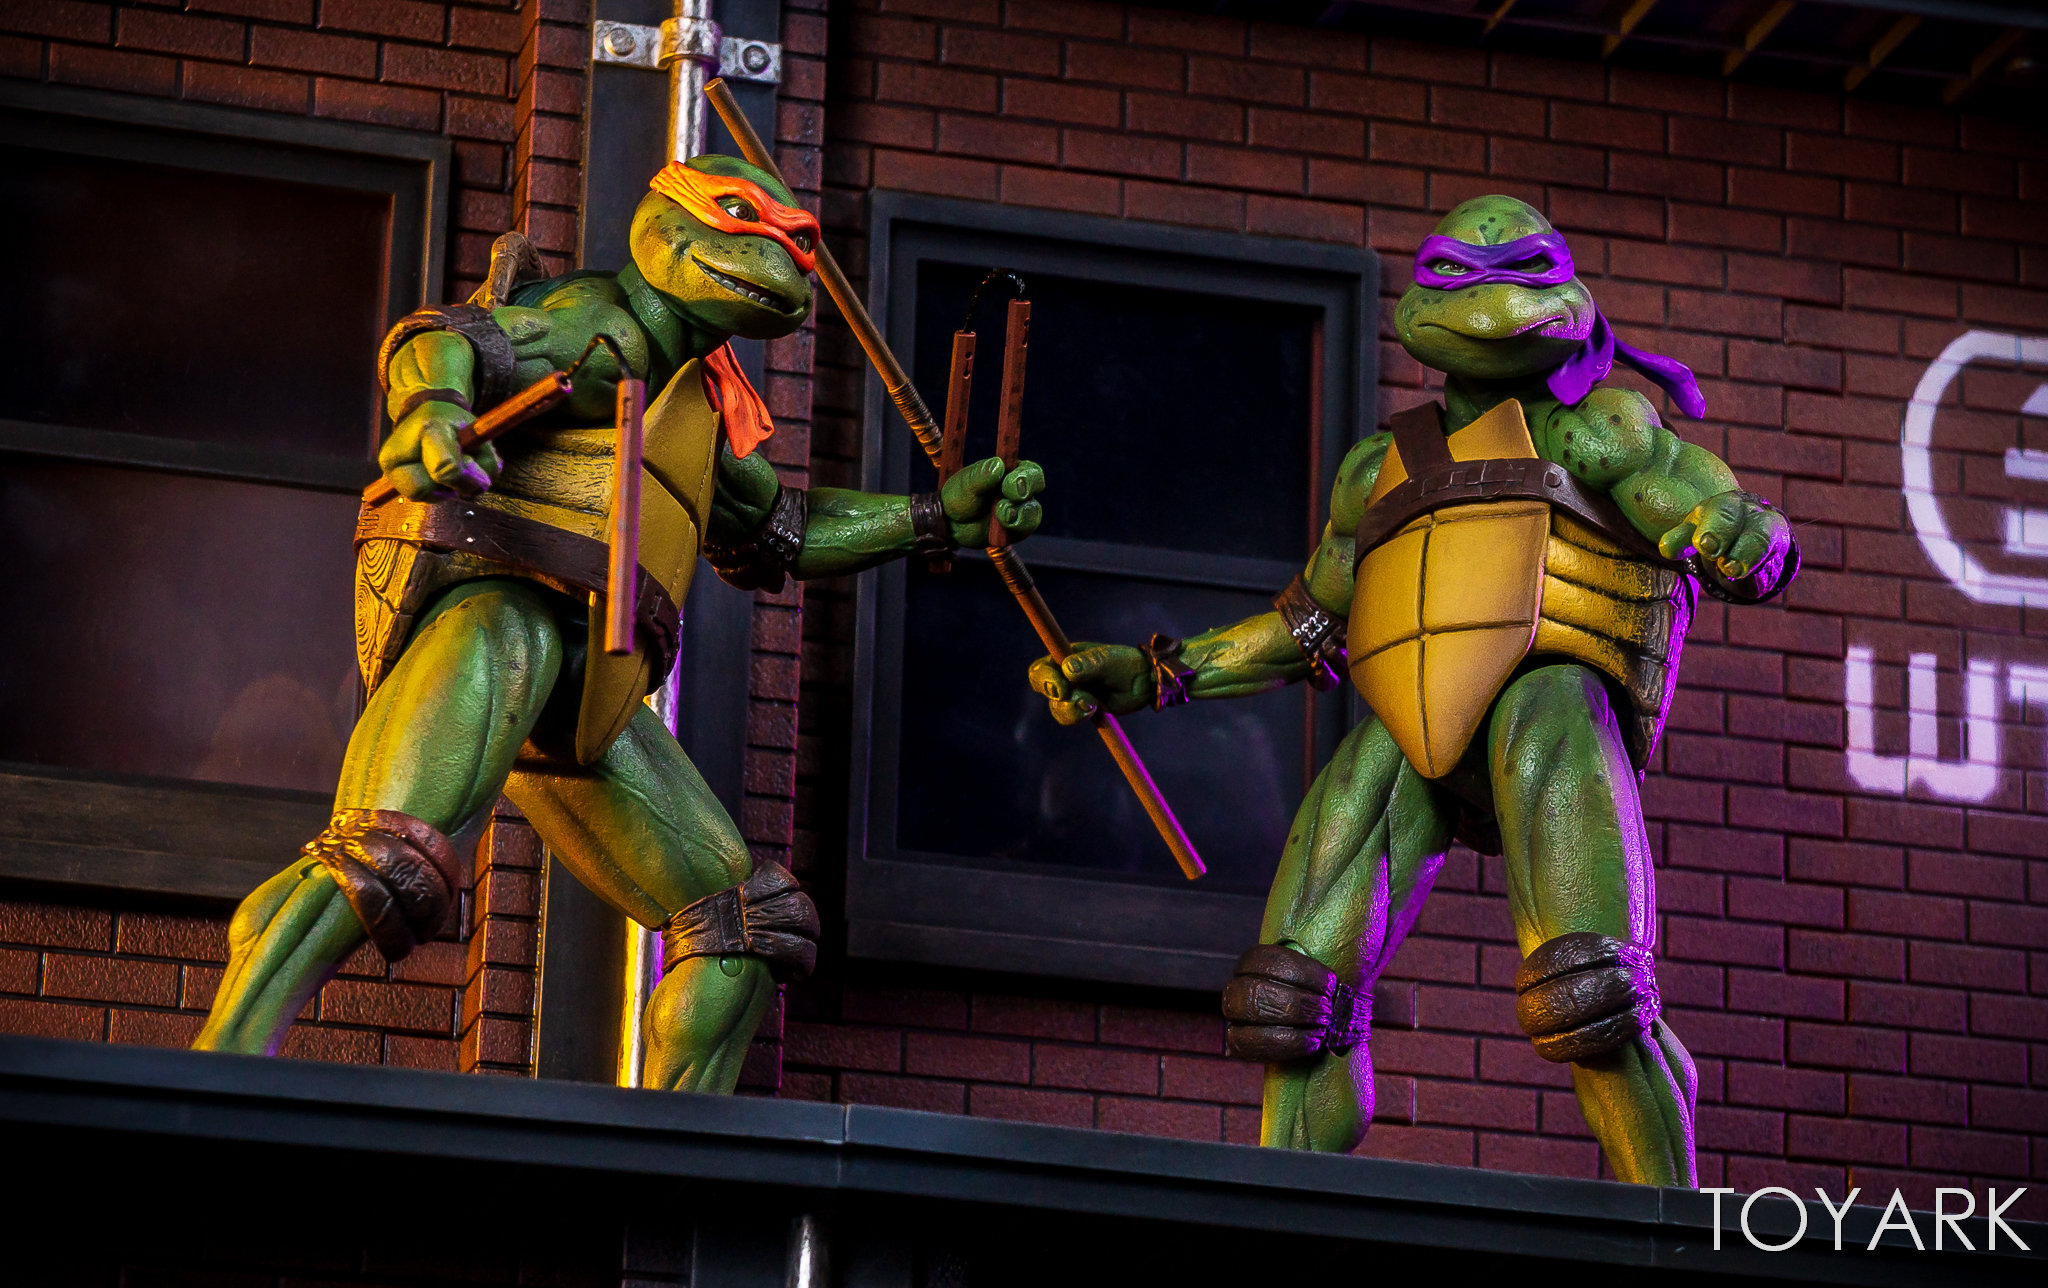 https://news.toyark.com/wp-content/uploads/sites/4/2018/07/NECA-TMNT-1990-and-Dio-Set-081.jpg